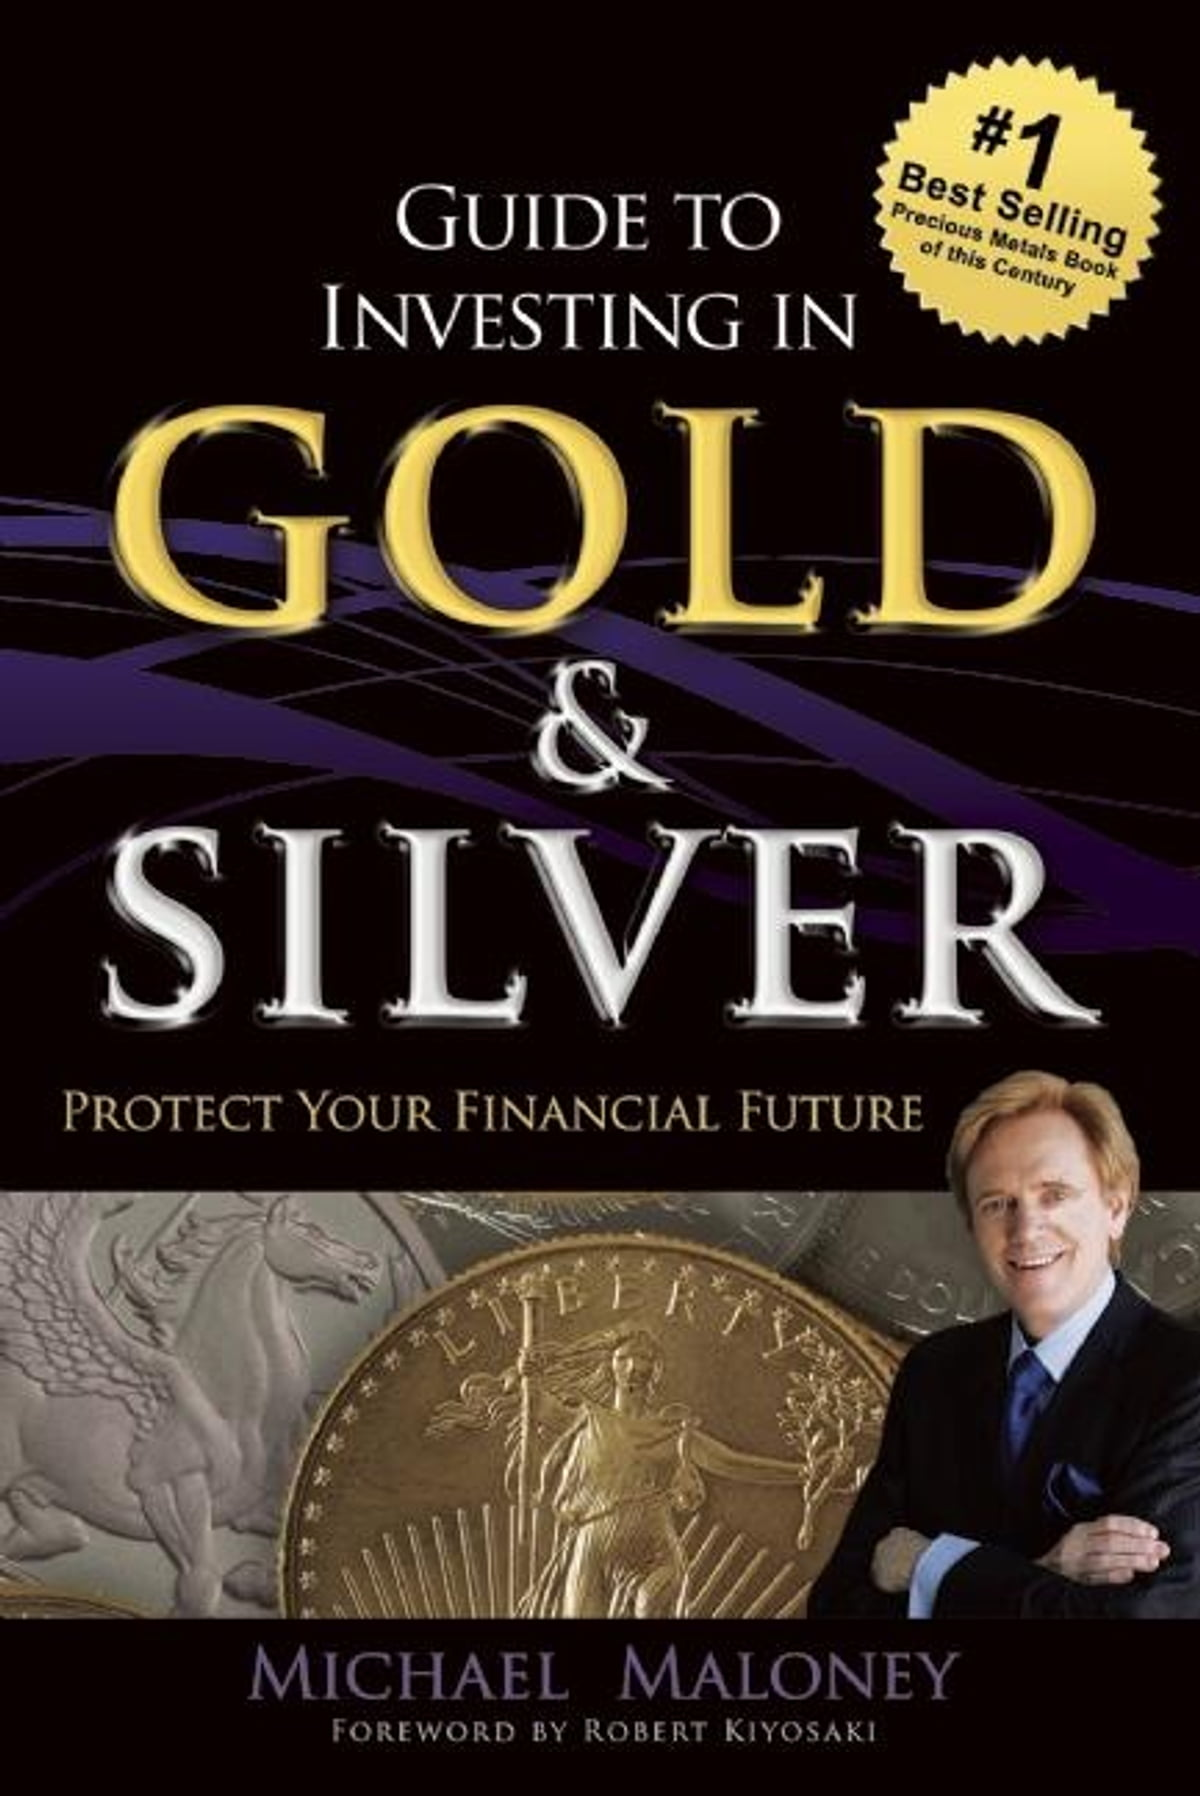 Guide To Investing in Gold & Silver eBook by Michael Maloney -  9781937832759 | Rakuten Kobo